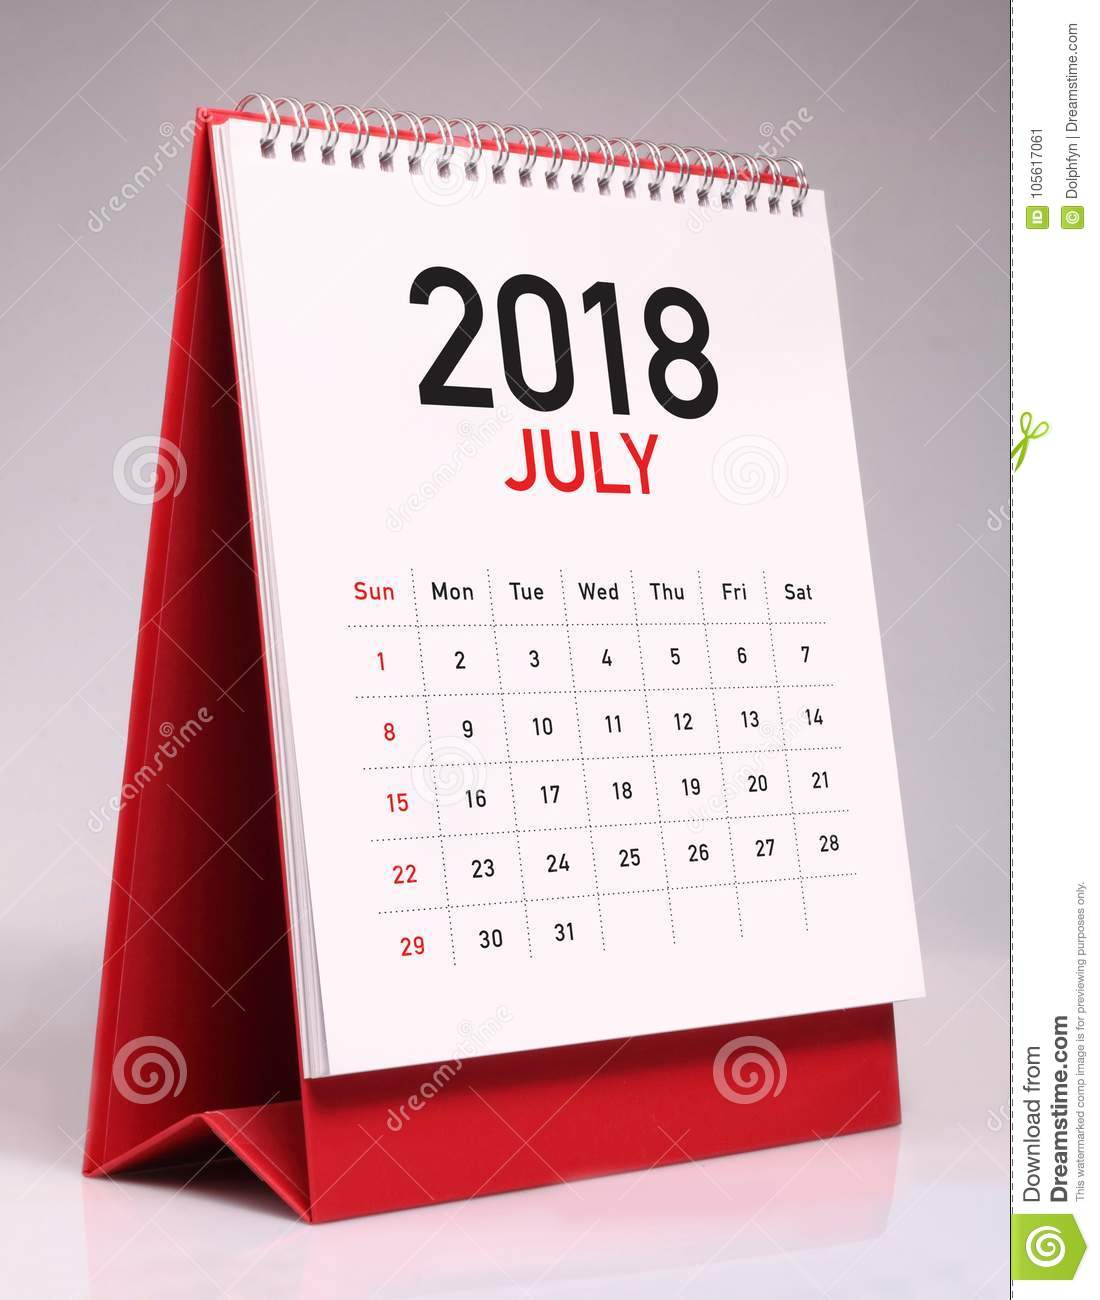 simple desk calendar for july 2018